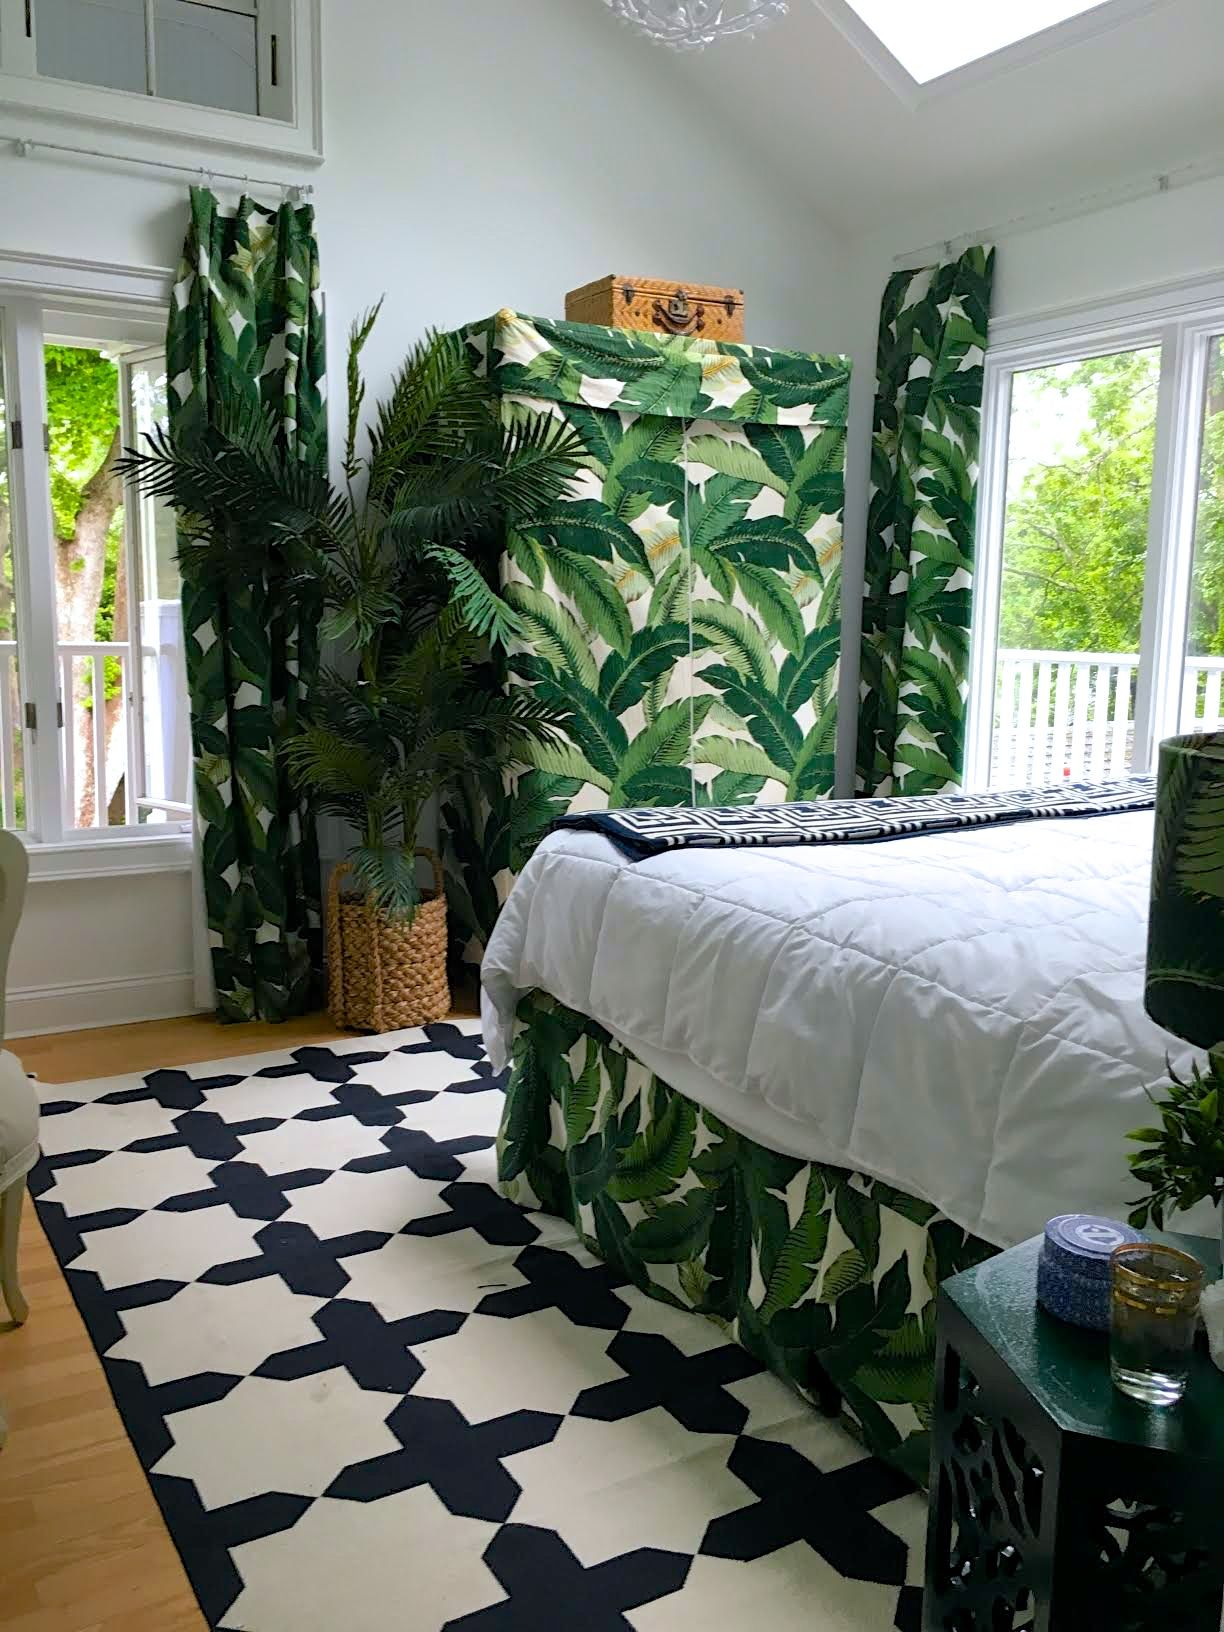 Tropical Bedroom Cococozy Tropical Bedrooms Green Bedroom Design Tropical Bedroom Decor